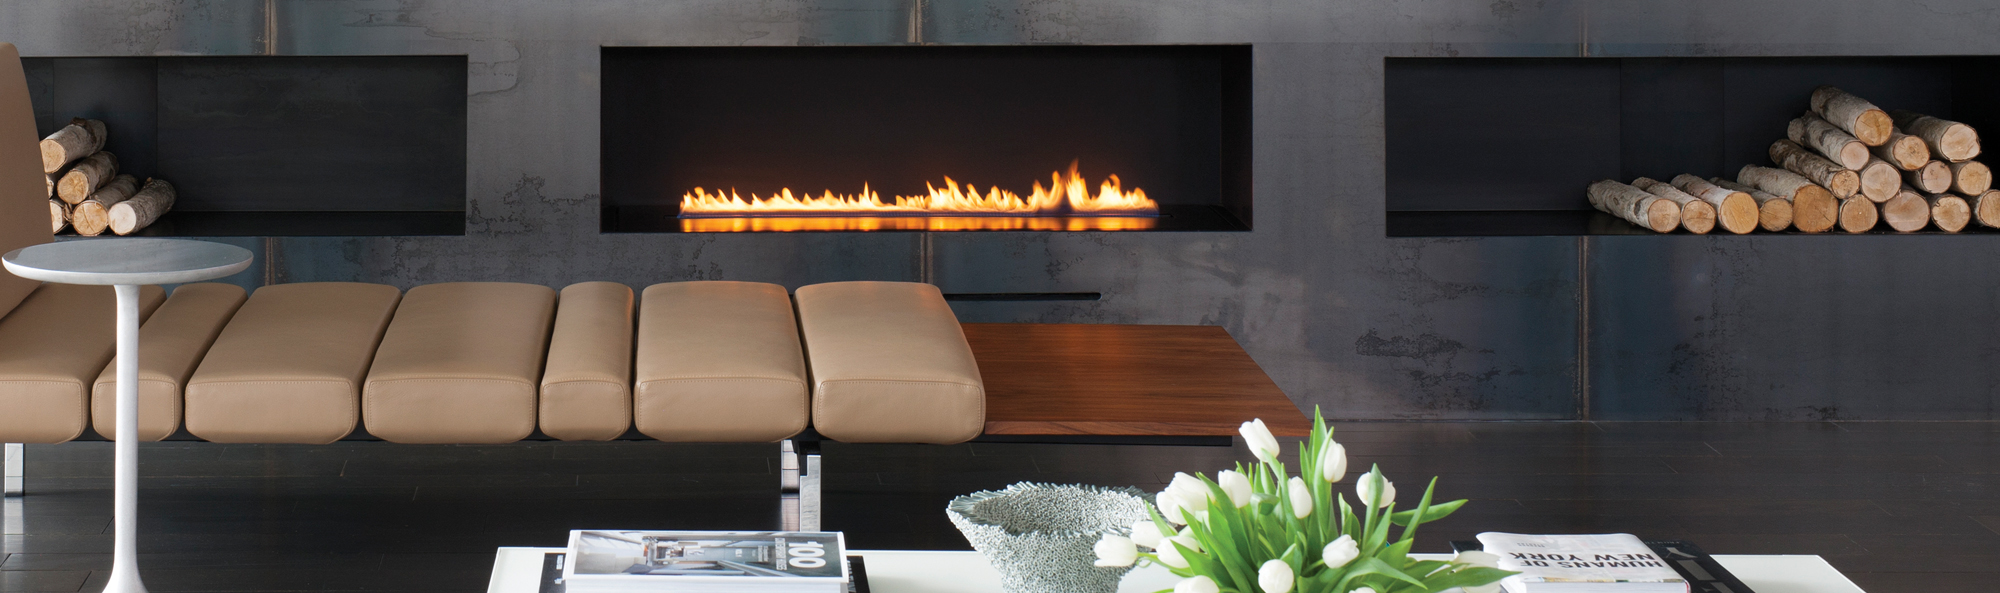 Modern Fireplace Images Modern Fireplace Products Archives Spark Modern Fires